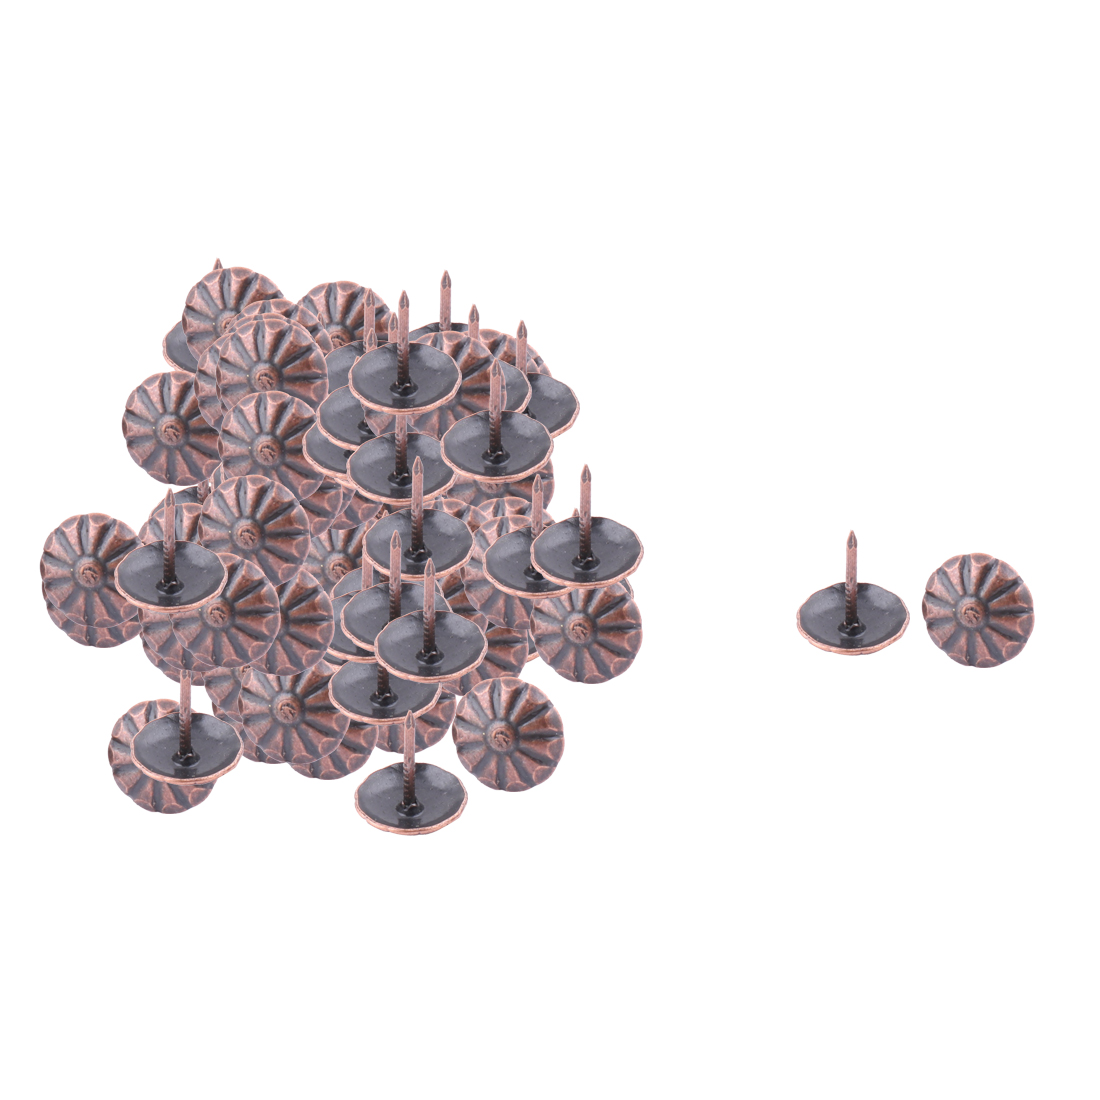 13mmx11mm Home Metal Vintage Style Flower Print Domed Nail Copper Tone 60 PCS